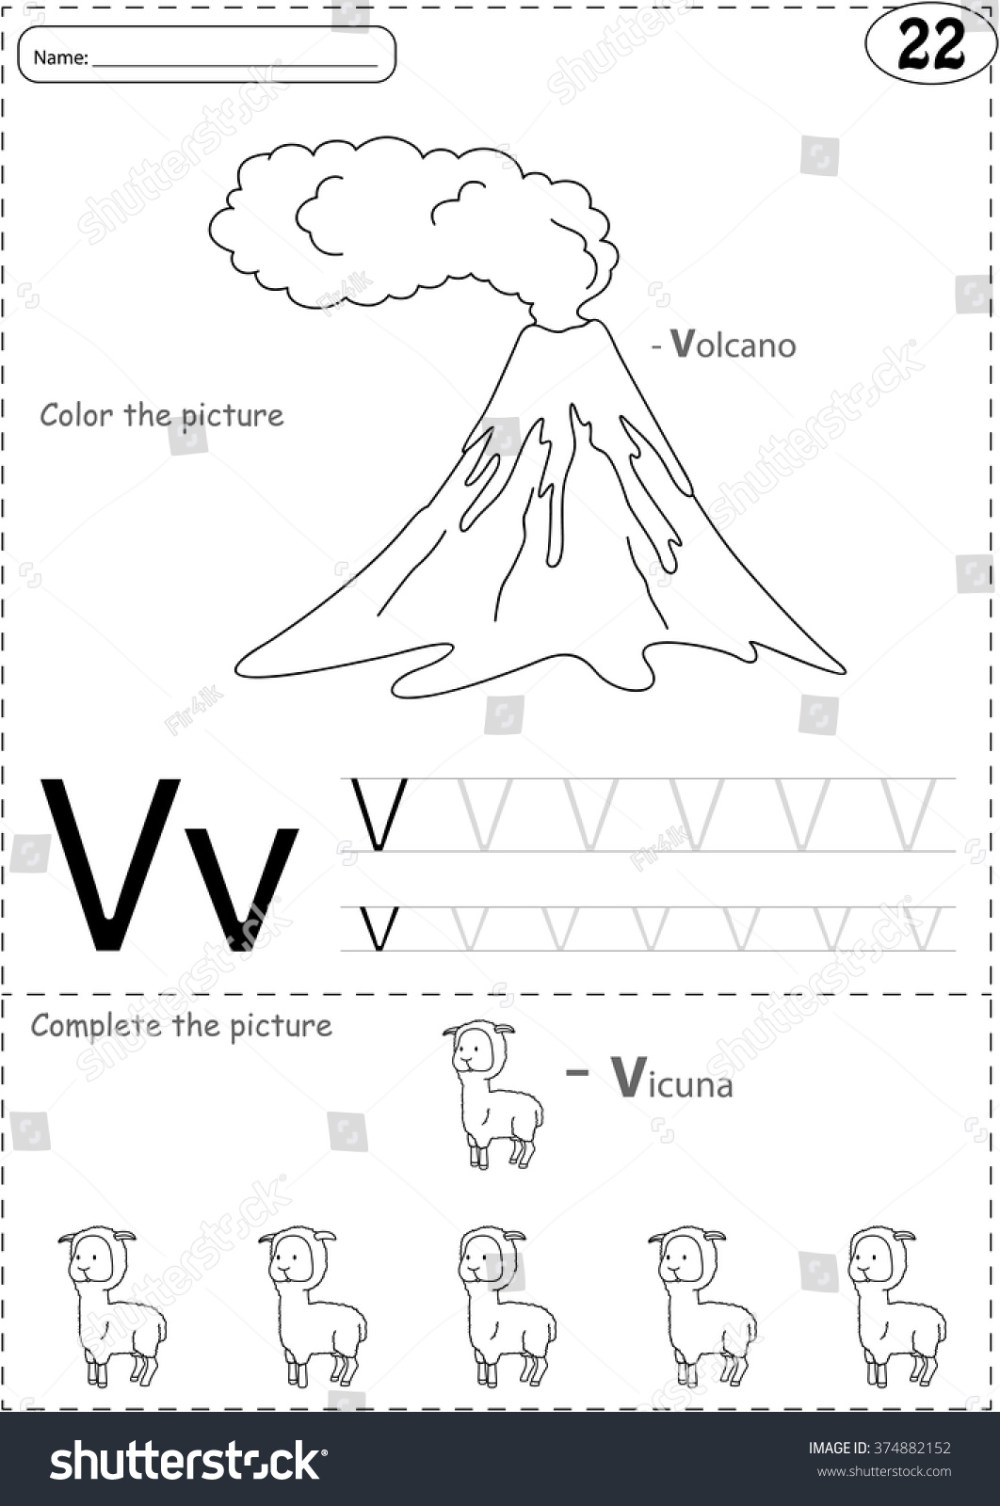 medium resolution of Printable Anger Volcano Worksheet   Printable Worksheets and Activities for  Teachers